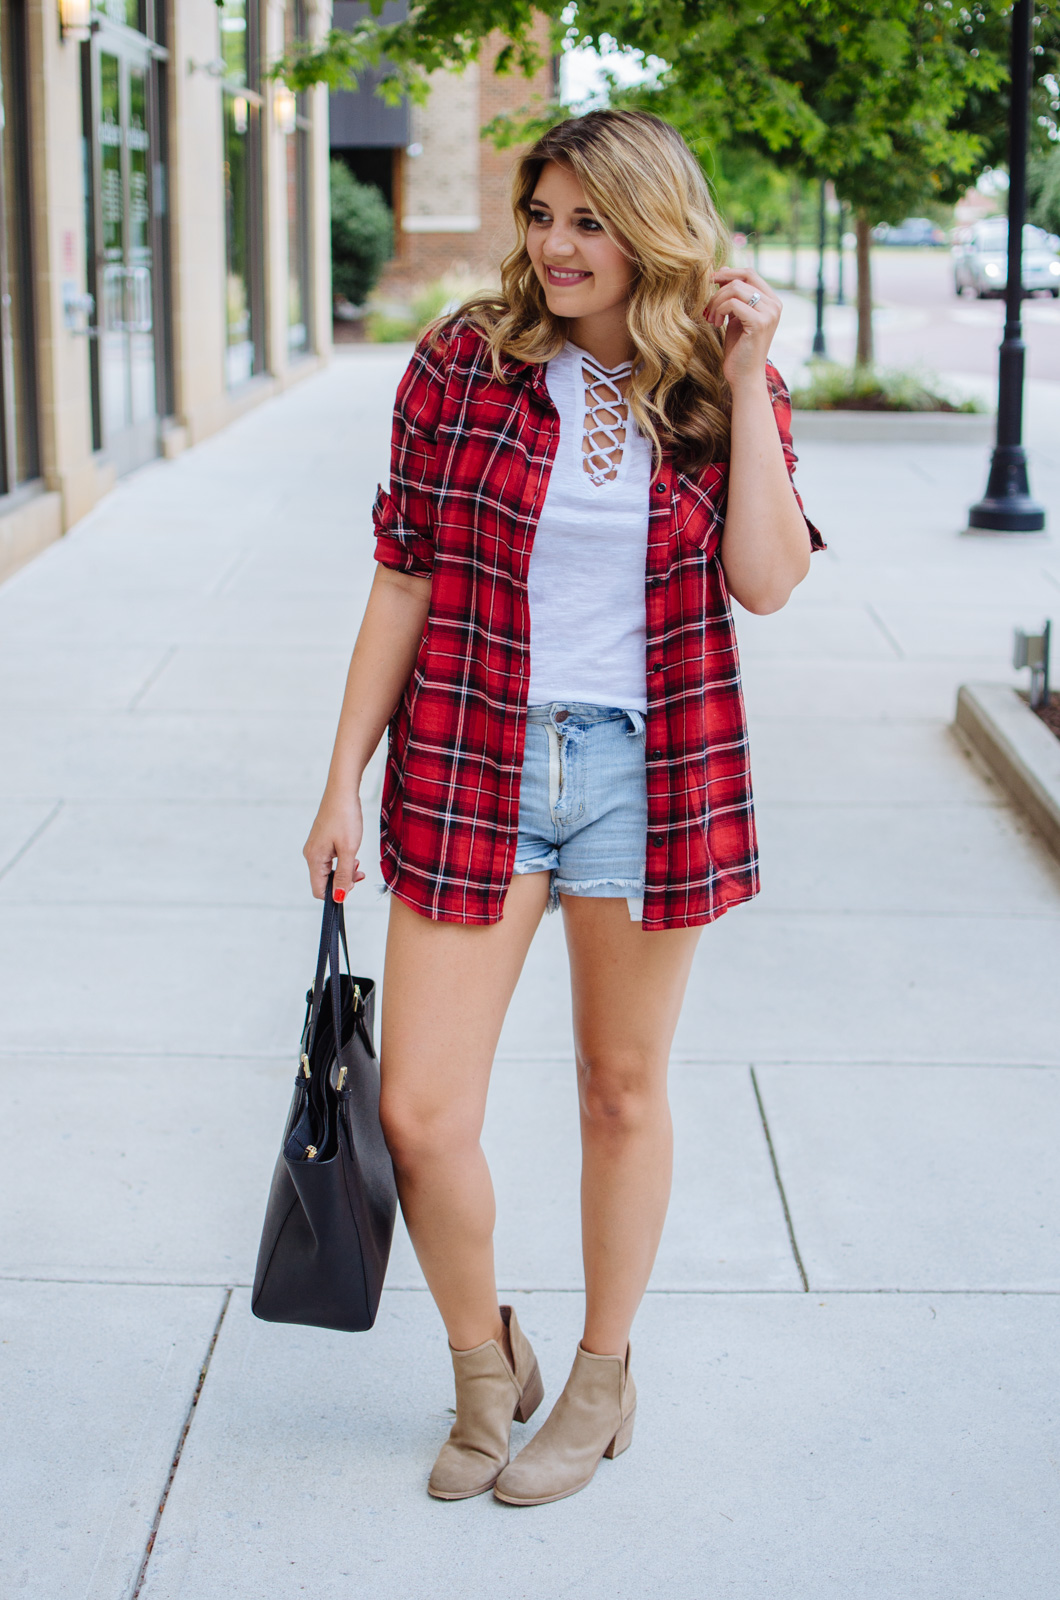 plaid top outfit - lace up tee and plaid top outfit | For more cute Fall outfit ideas, go to bylaurenm.com!